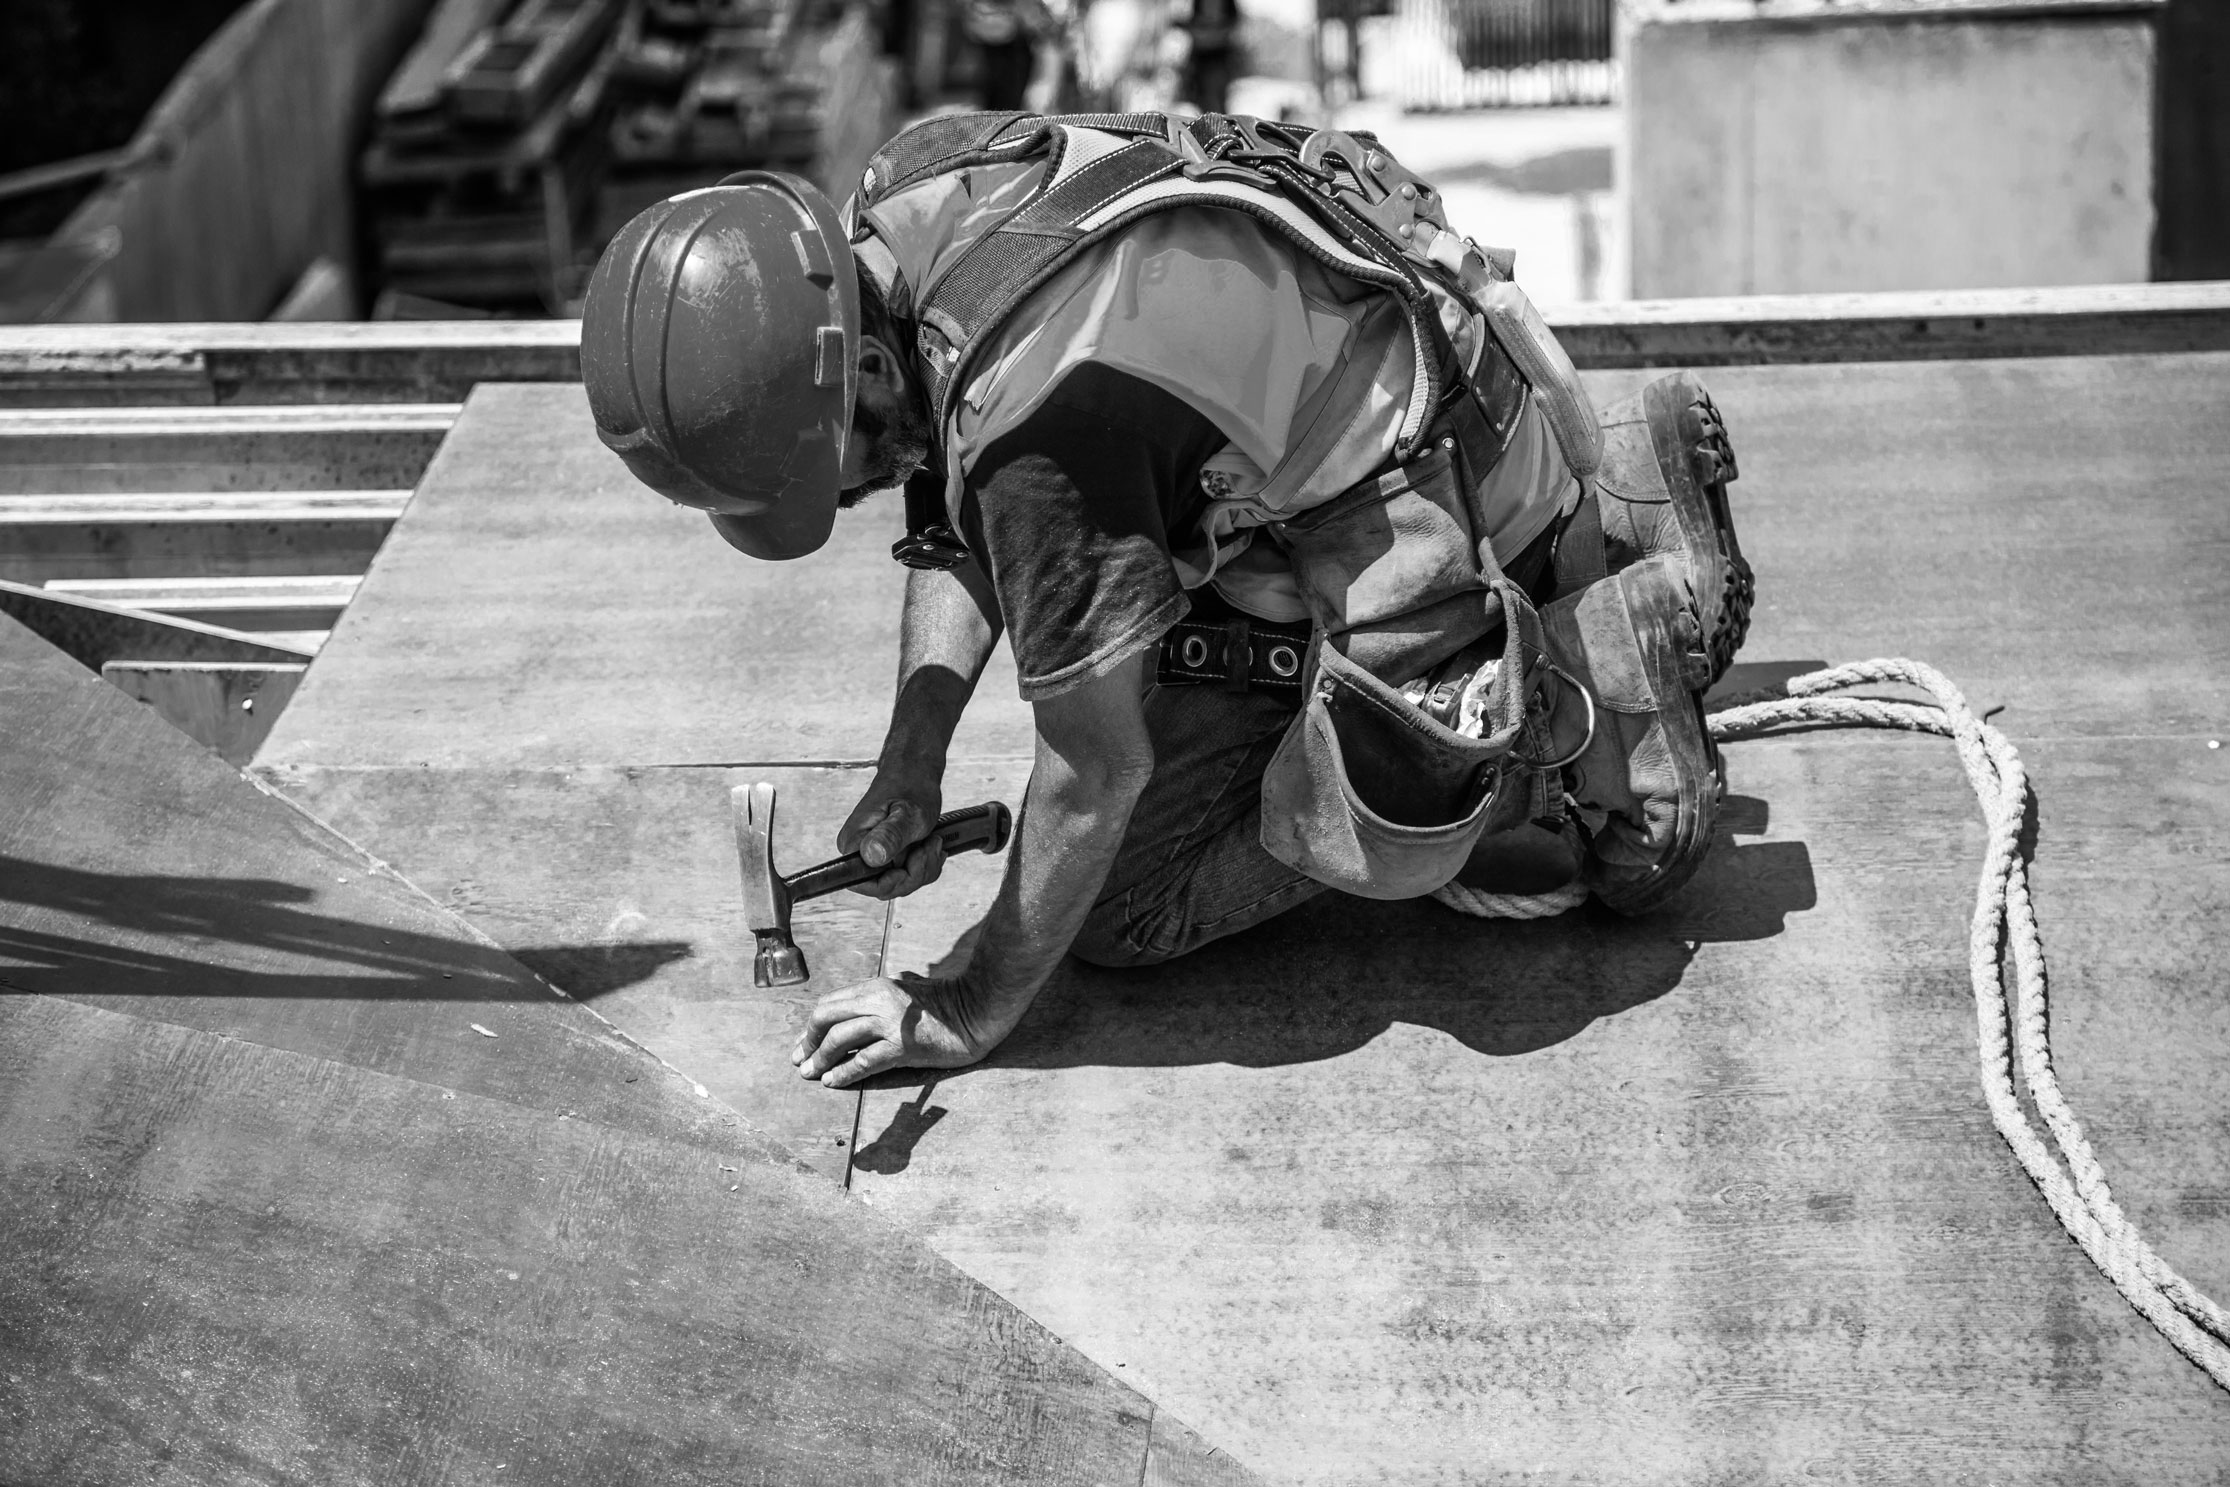 Black and white image of a construction worker, looking down and using tools.